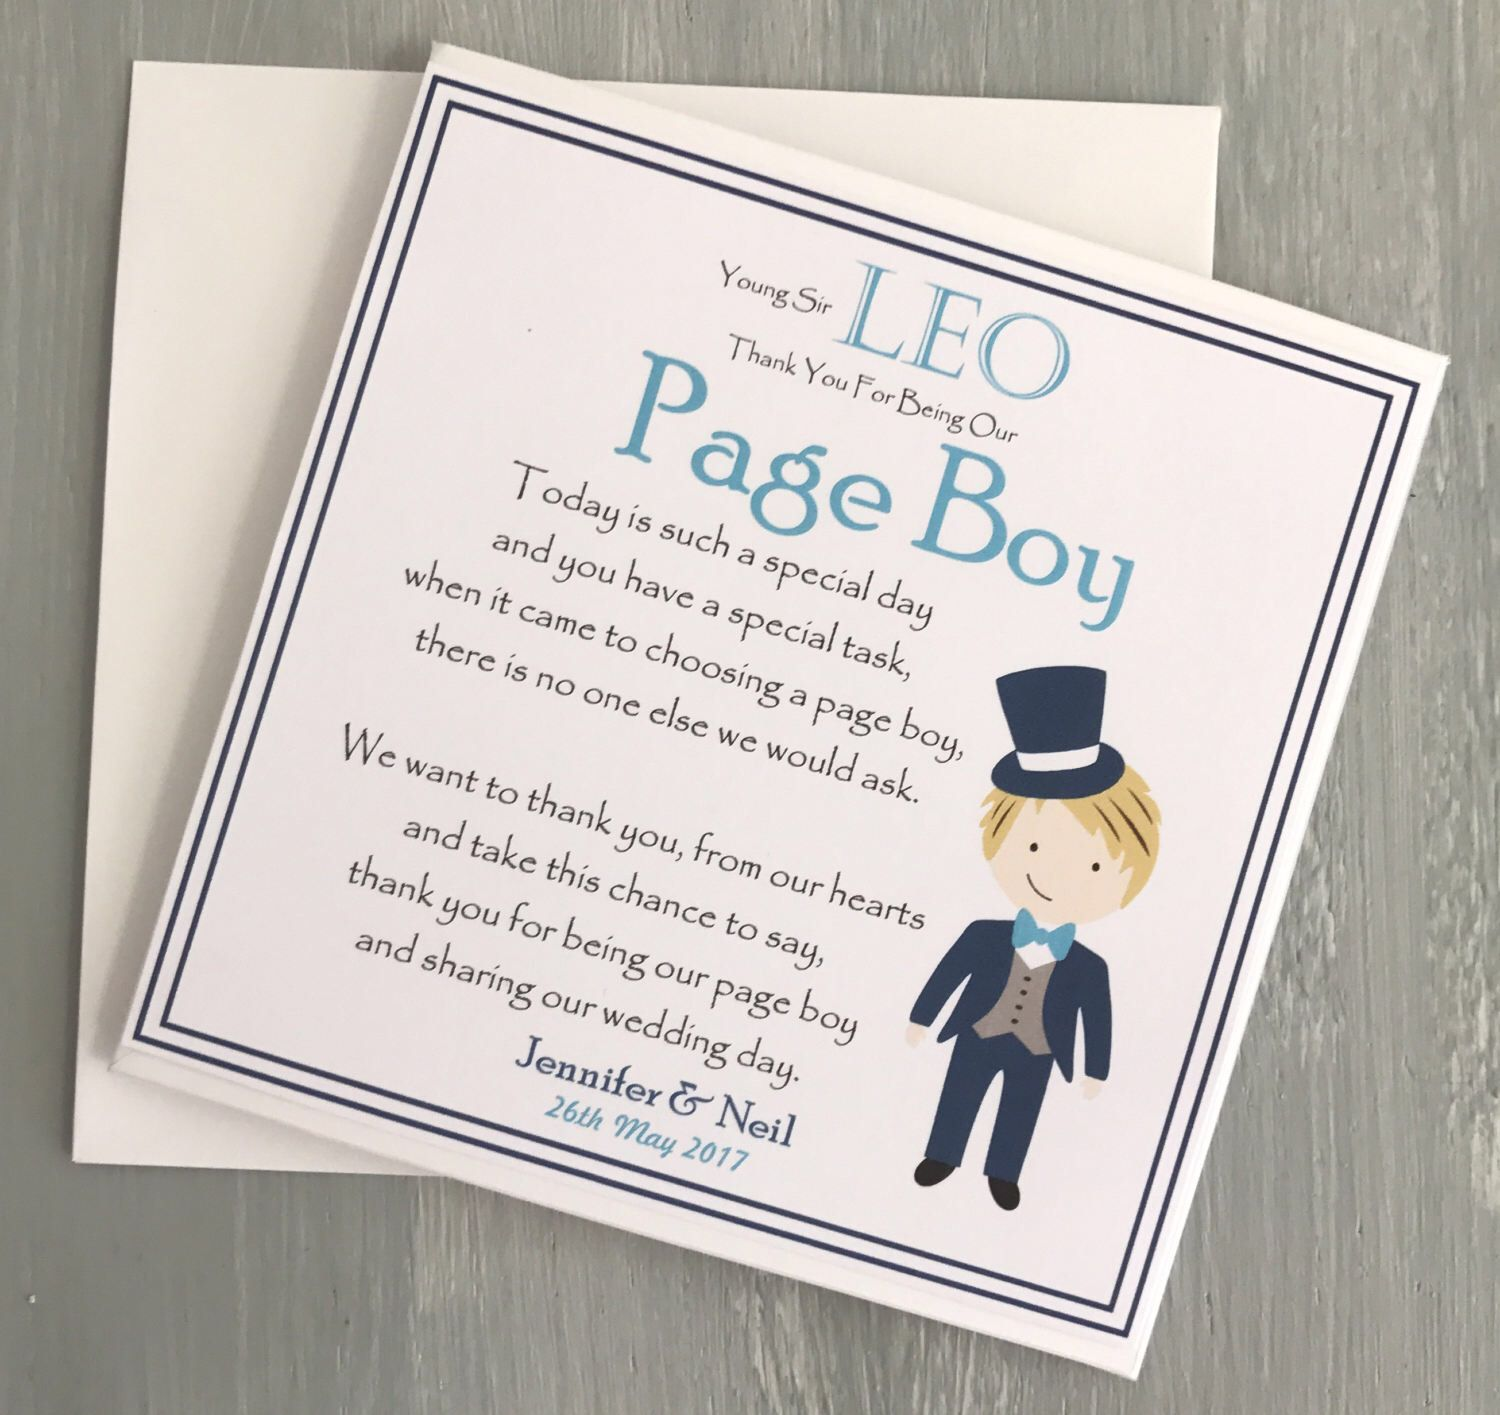 Thank You For Being Our Page Boy Personalised Thank You Greetings Card